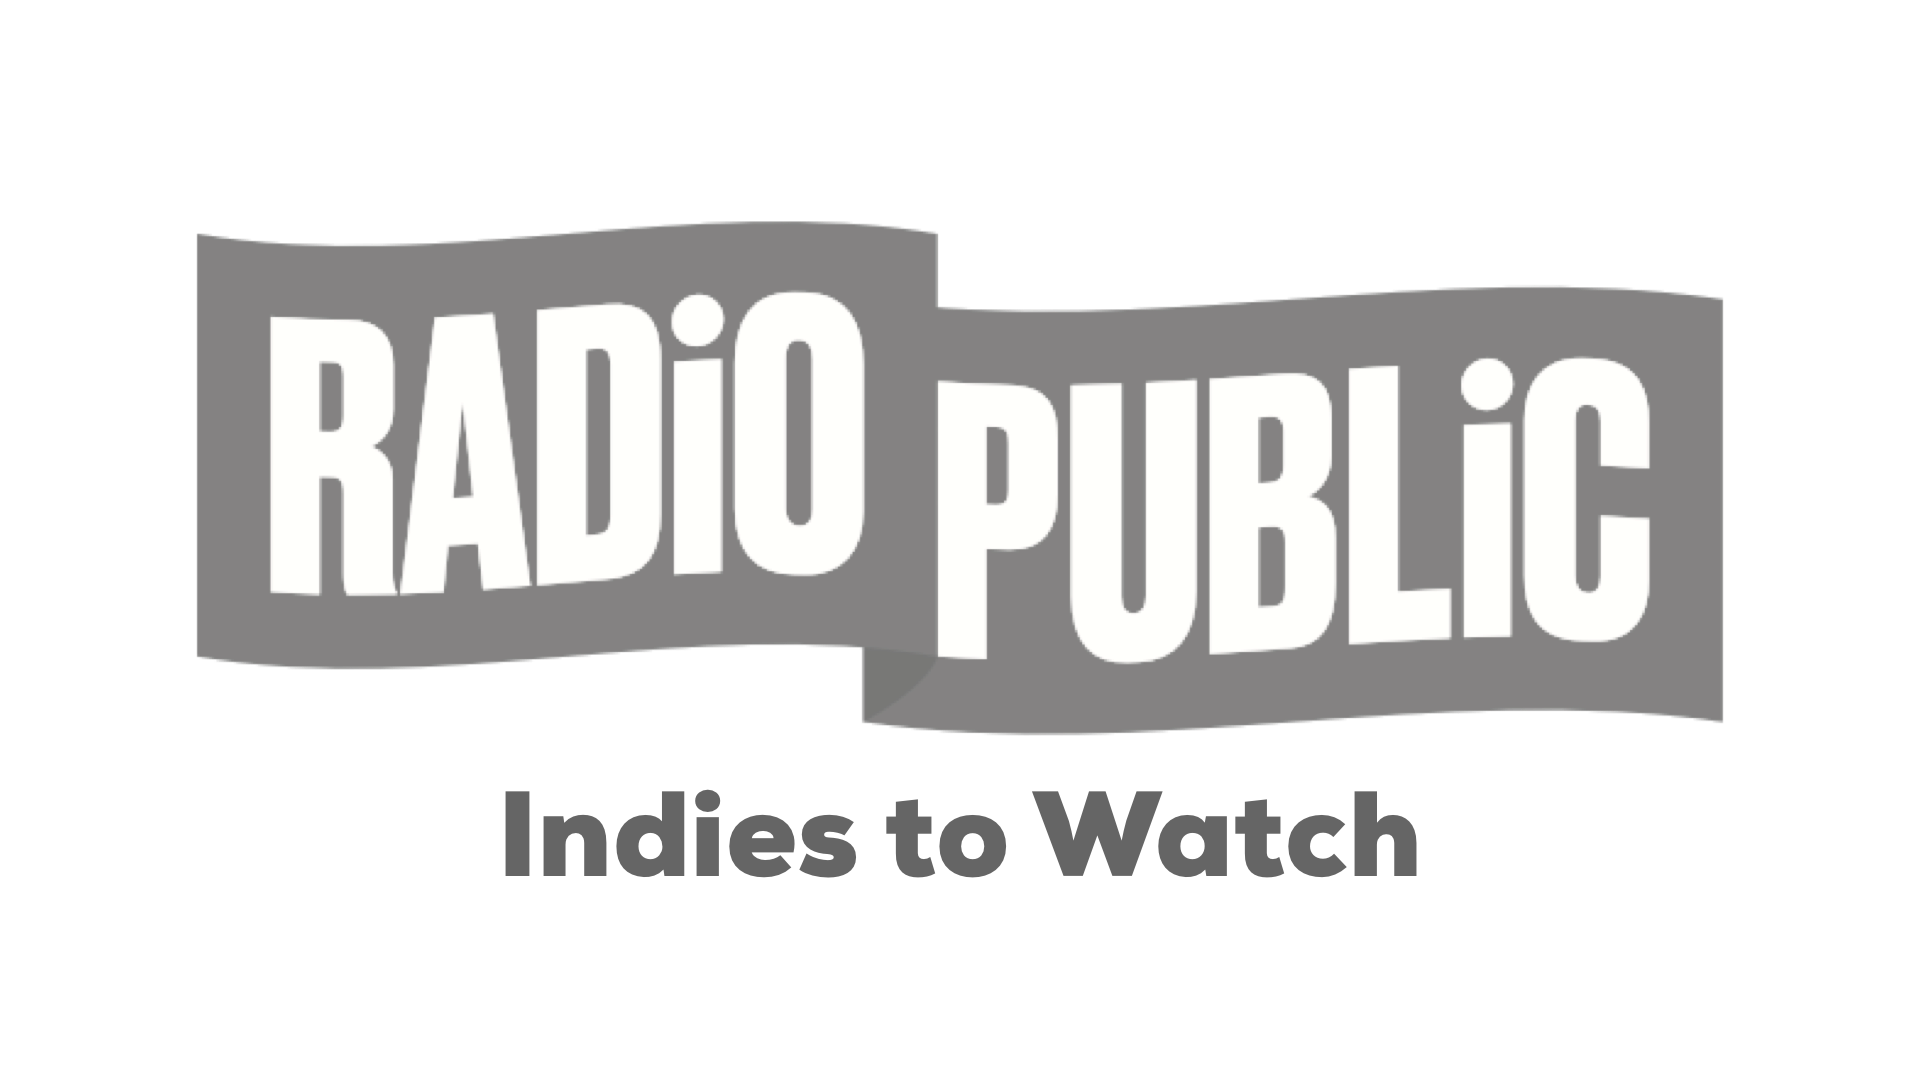 Radio Public Indies to Watch